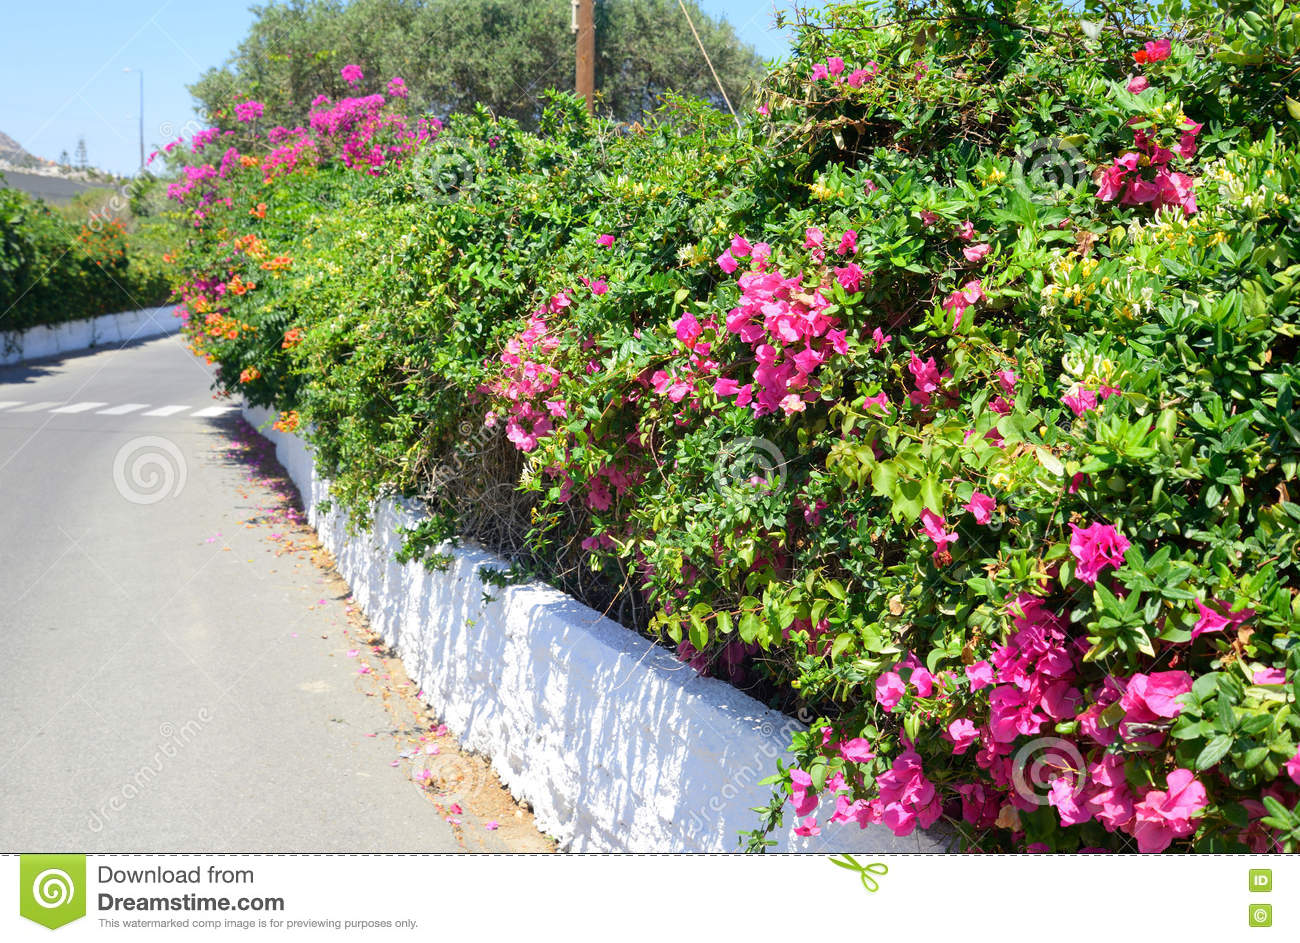 Bushes With Pink Flowers Stock Image Image Of Europe 73047565